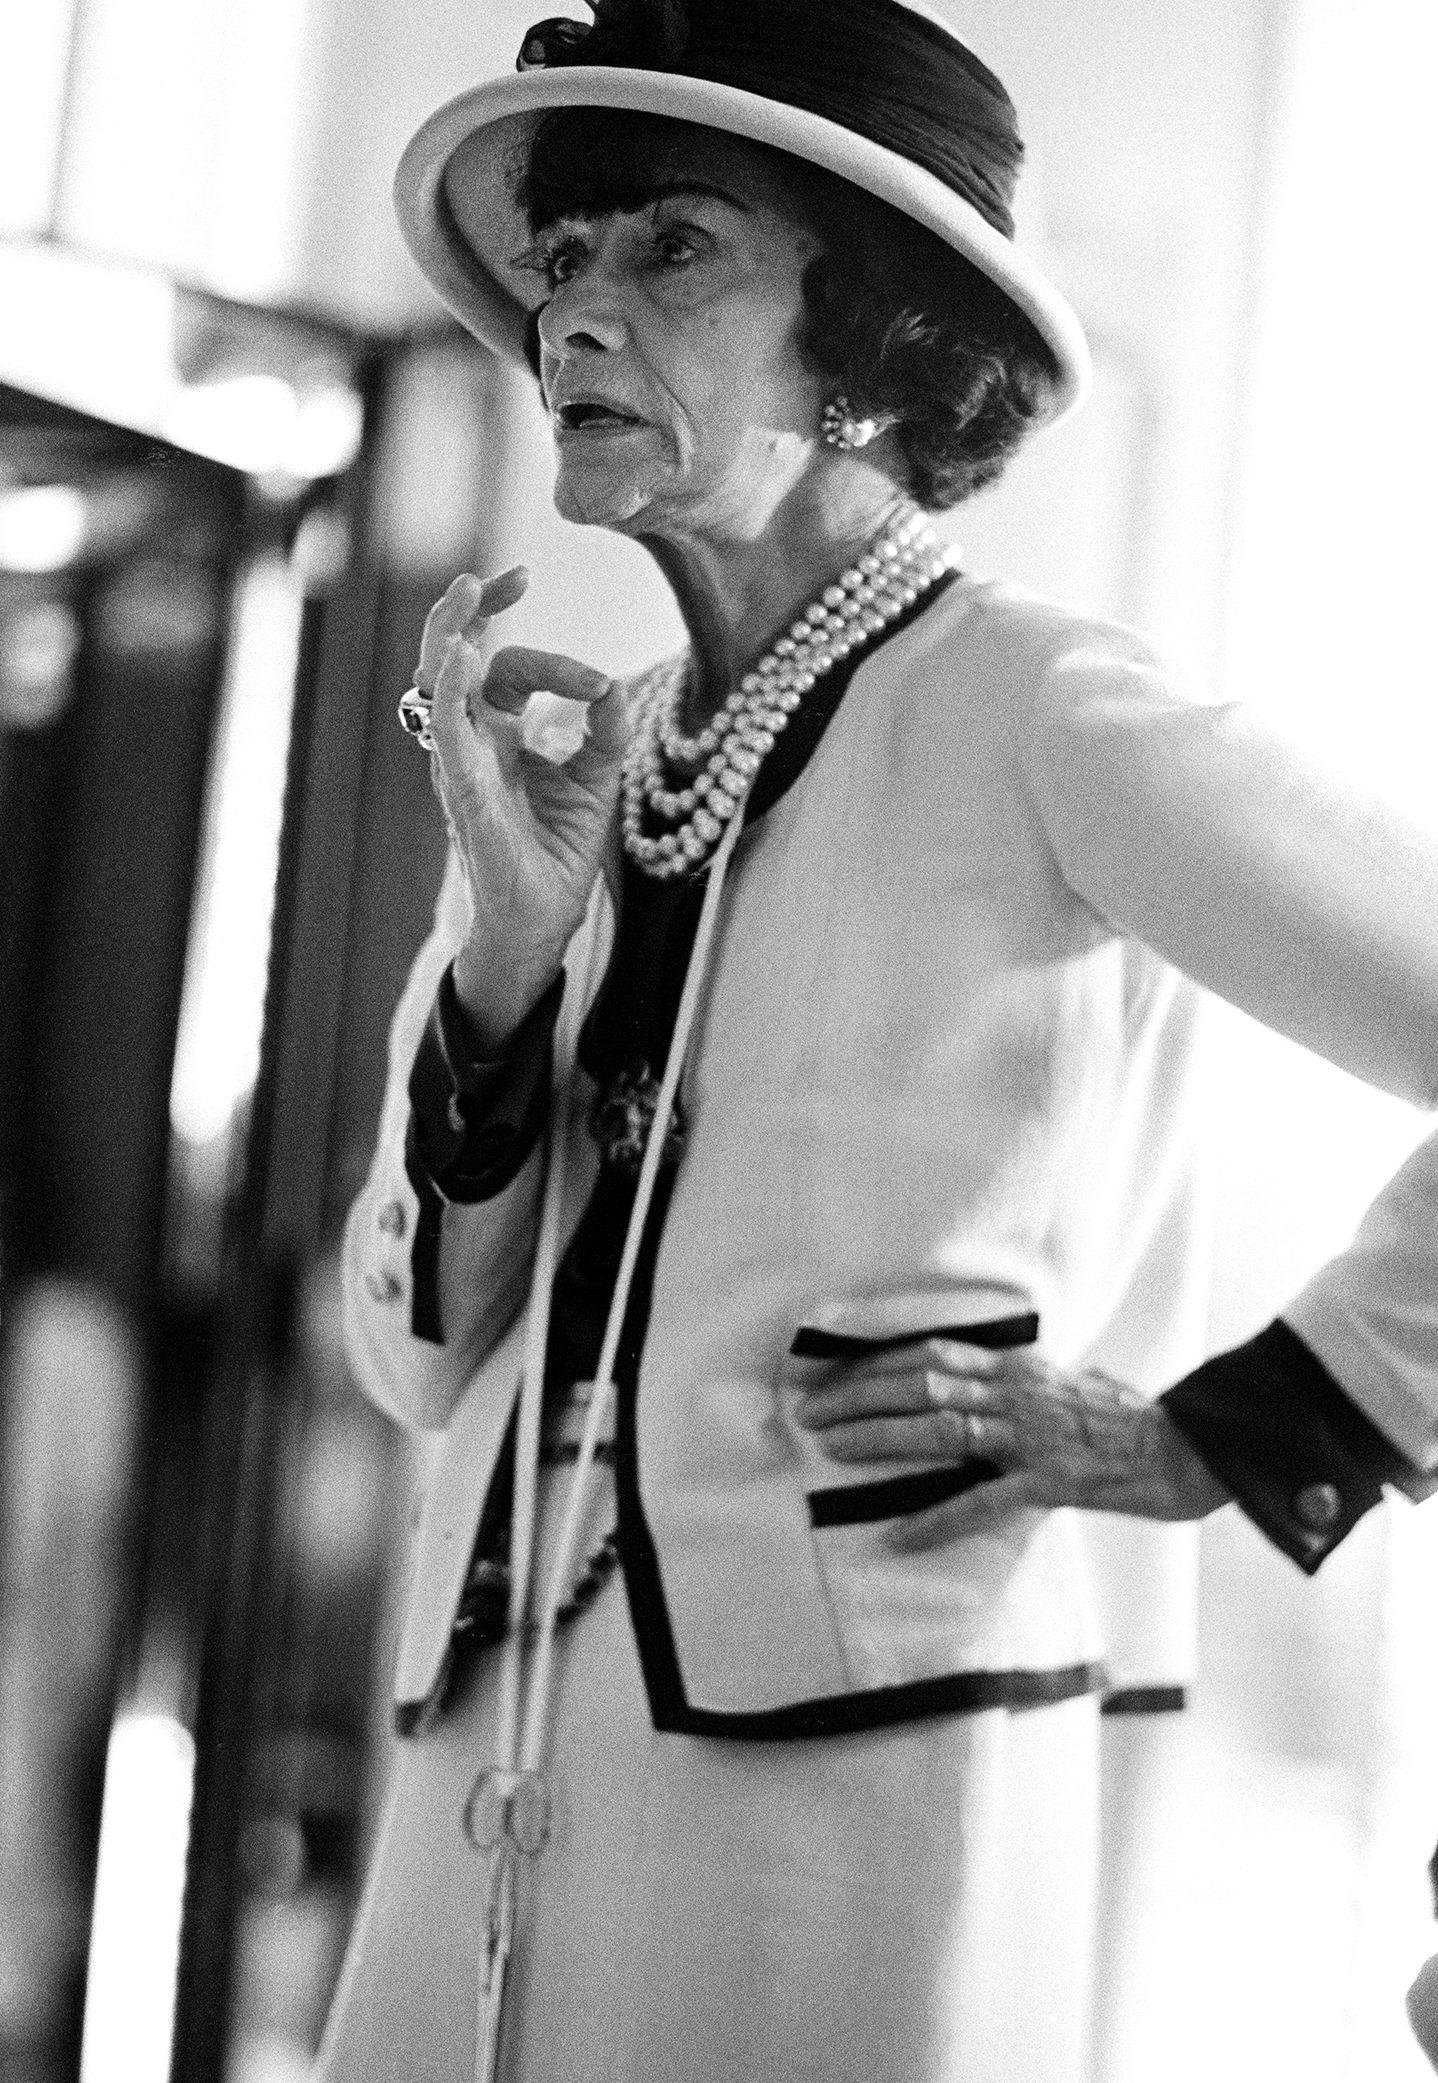 A Brief History on the Iconic Chanel Jacket